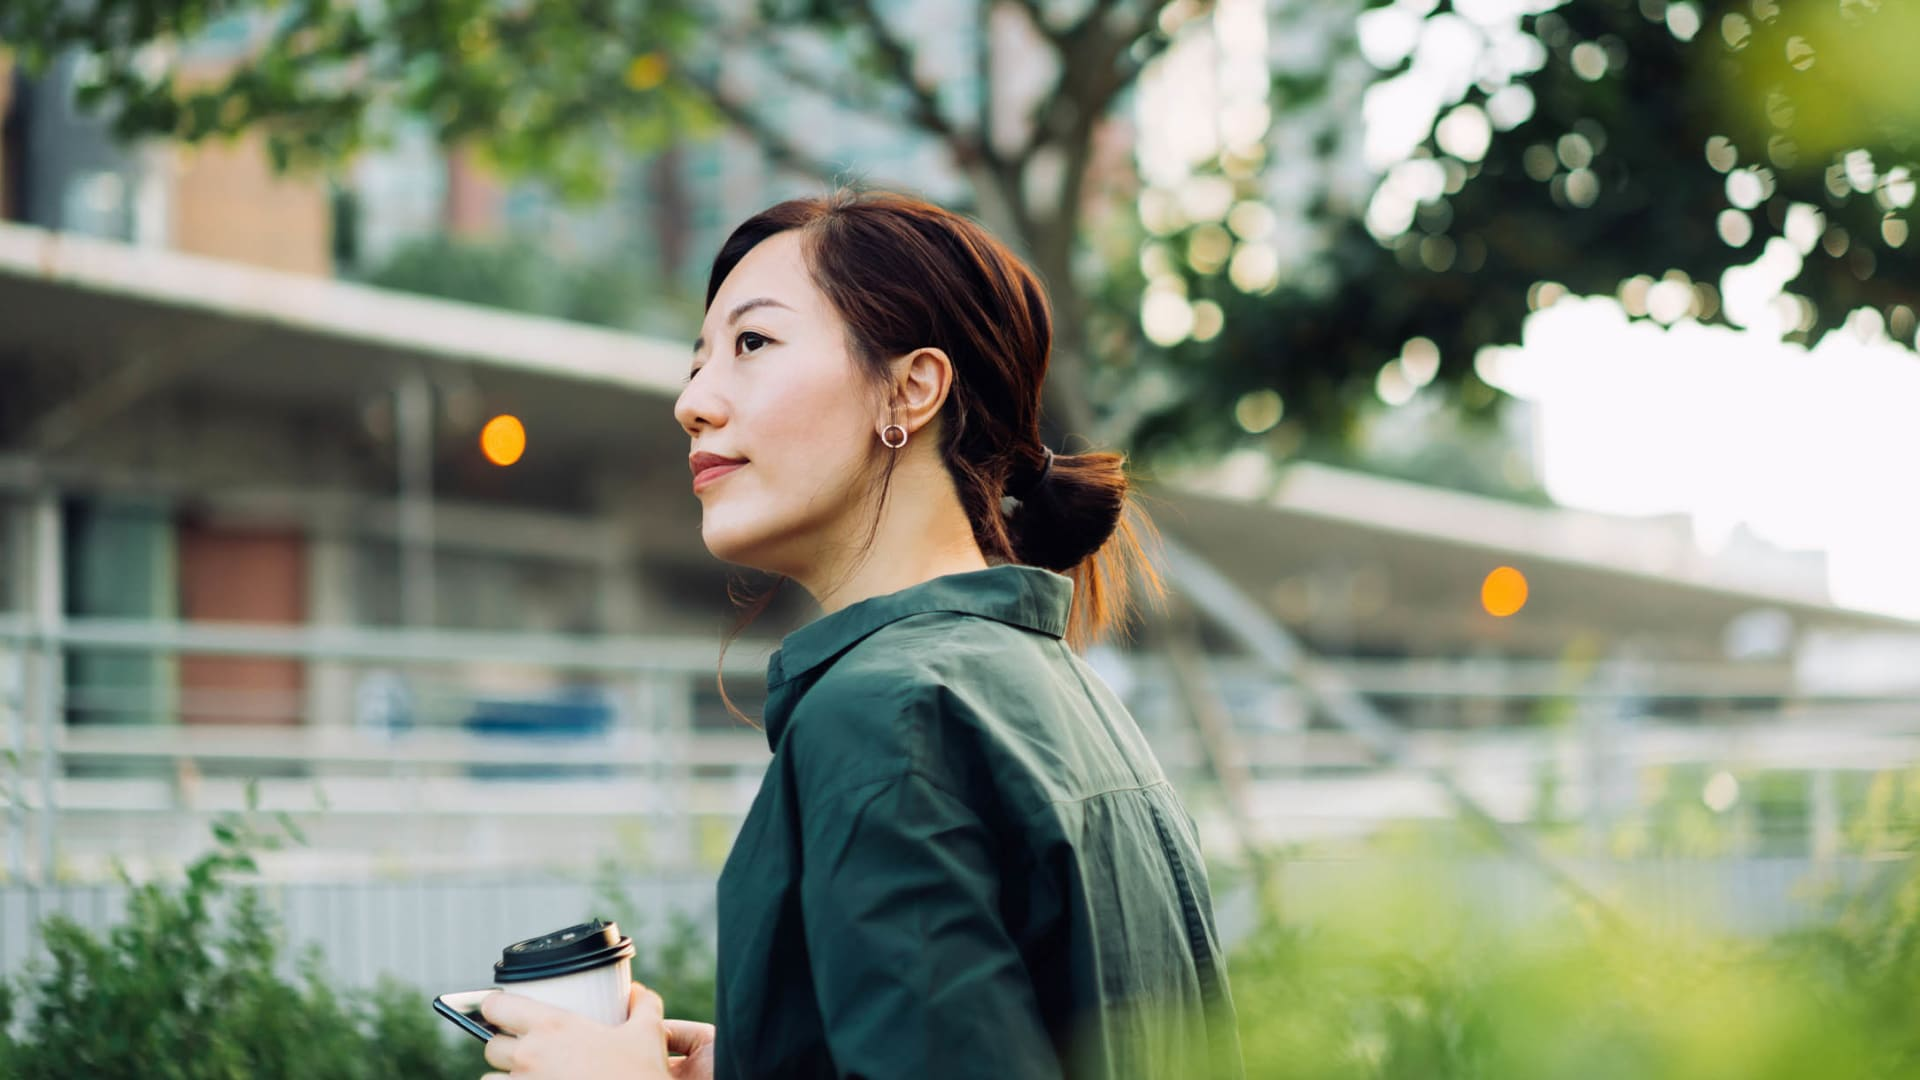 Want to Be Happier? Science Says Buying a Little Time Leads to Significantly Greater Life Satisfaction